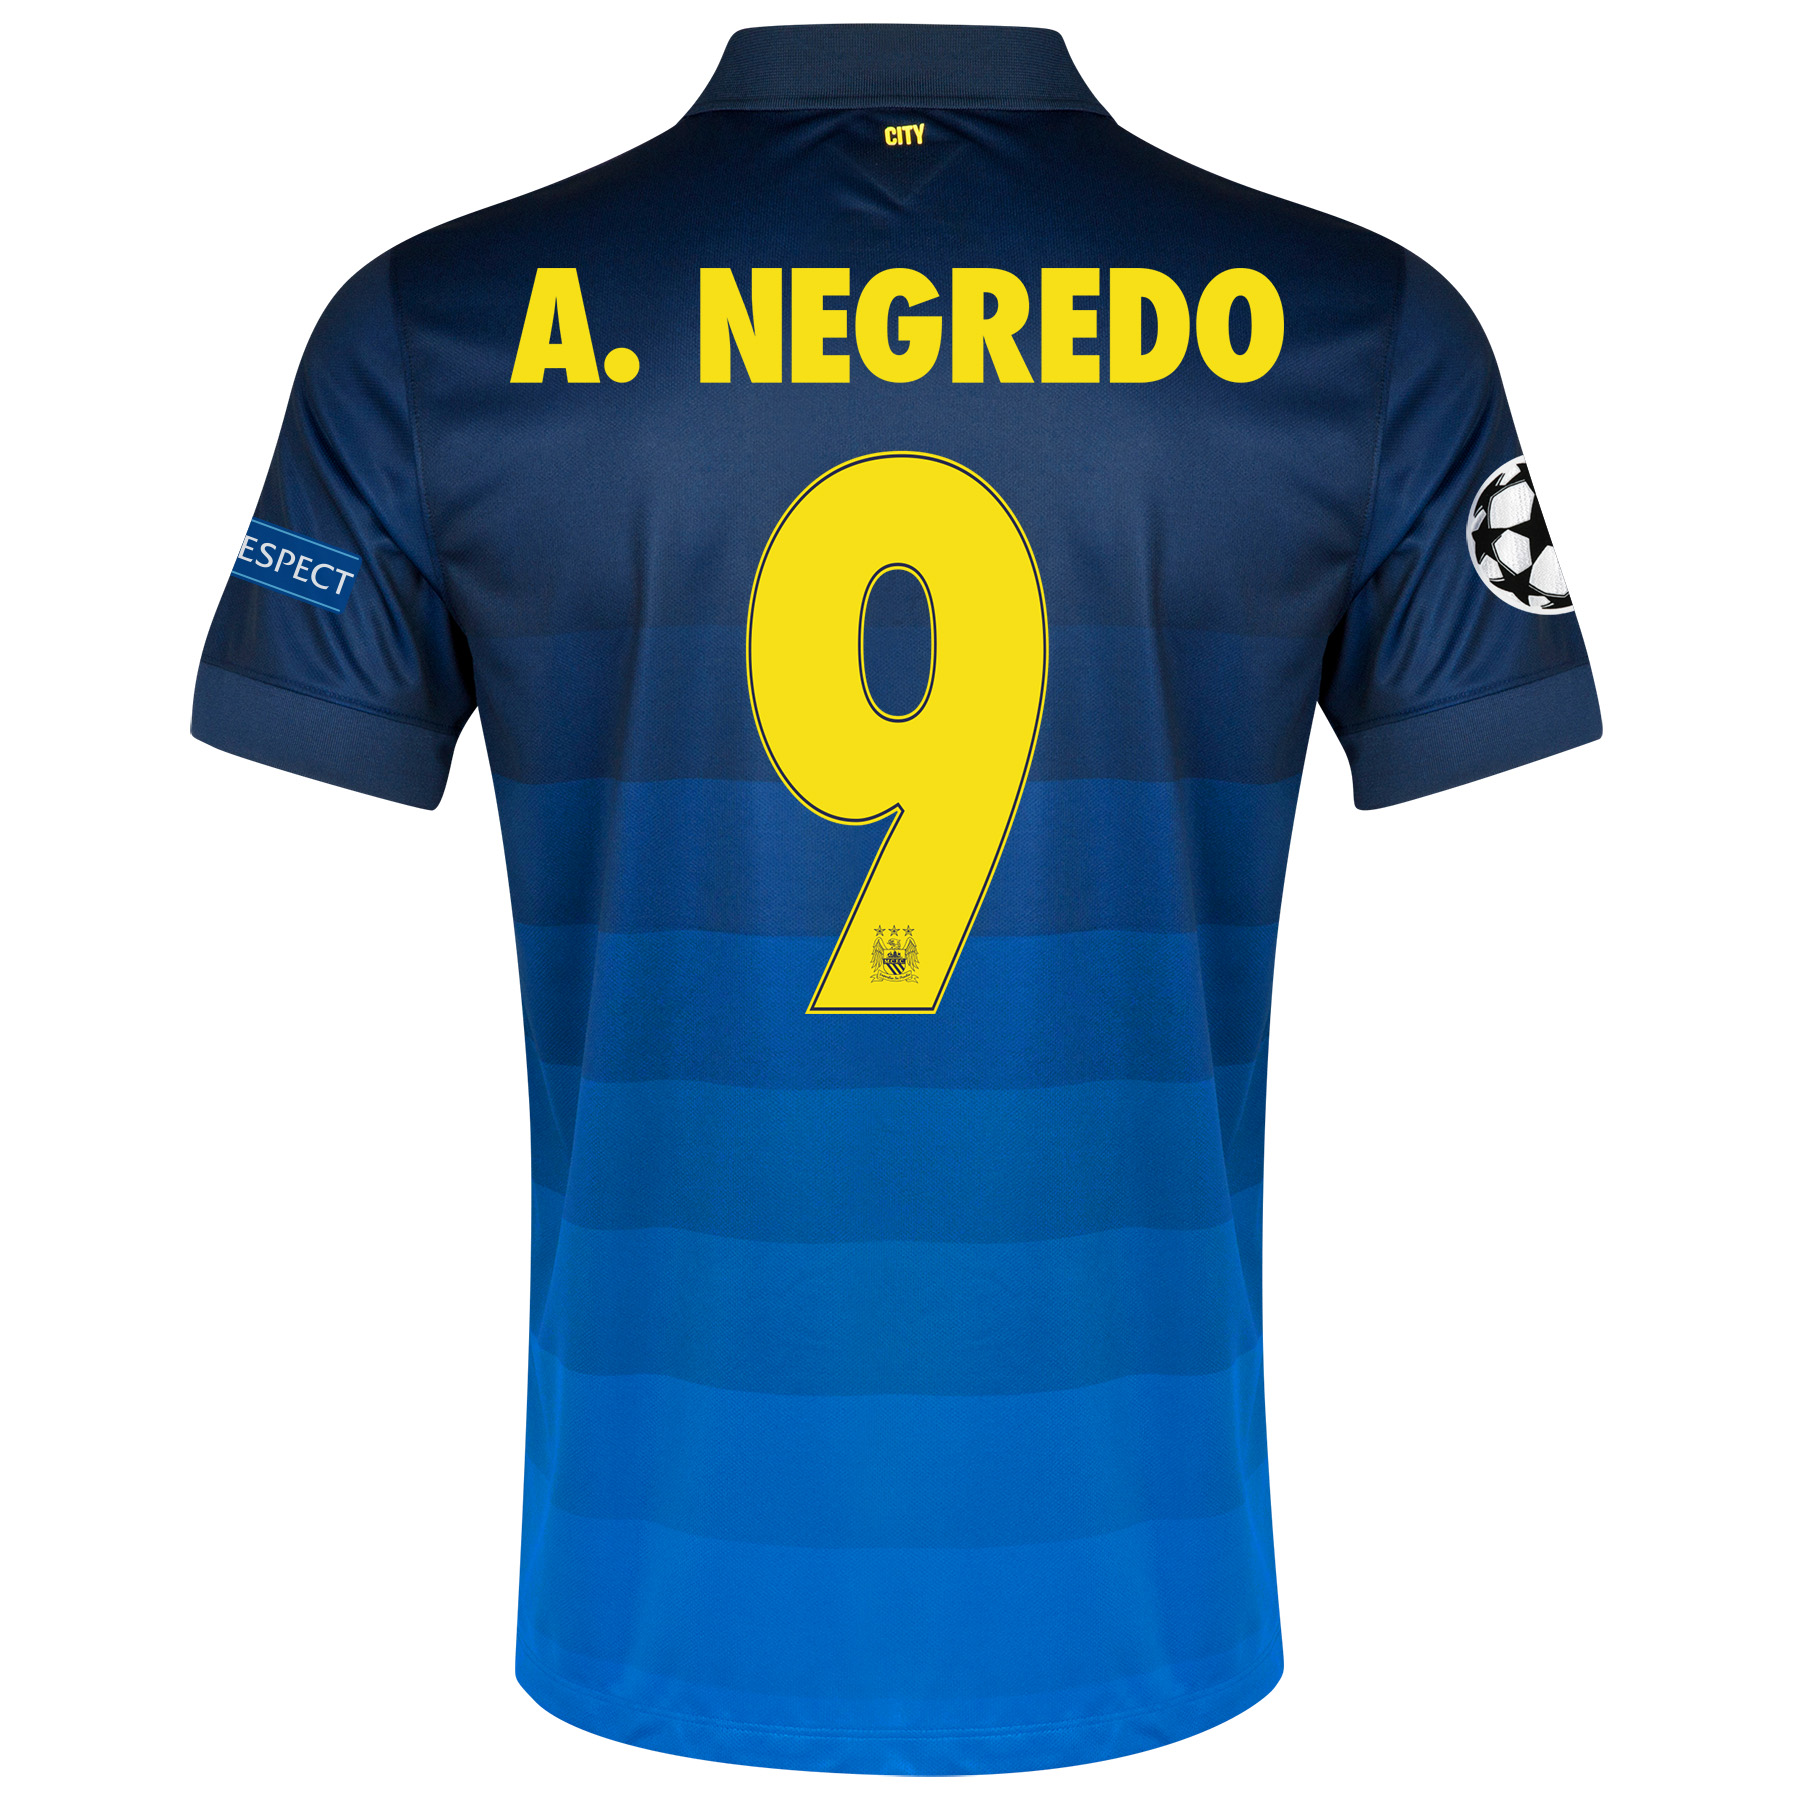 Manchester City UEFA Champions League Away Shirt 2014/15 - Kids with A.Negredo 9 printing